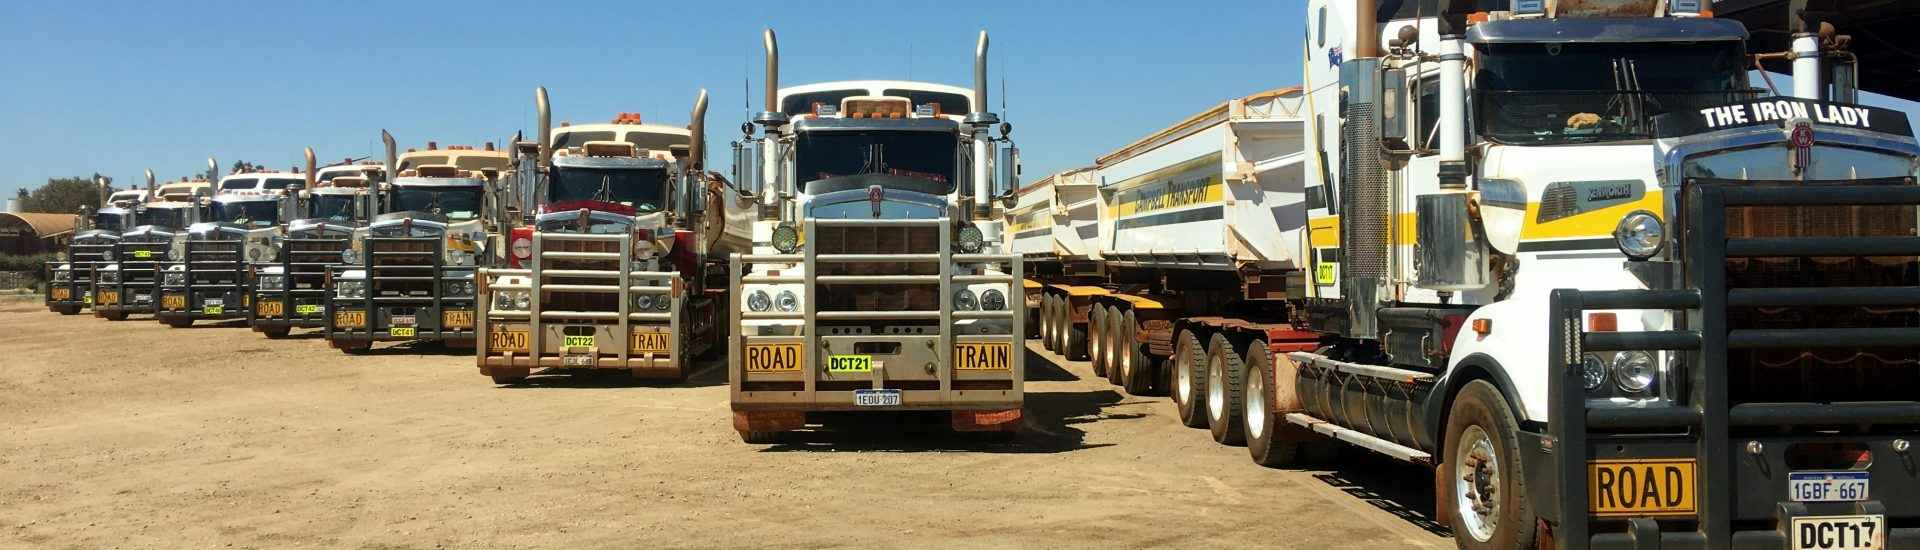 Freight Transport Services WA